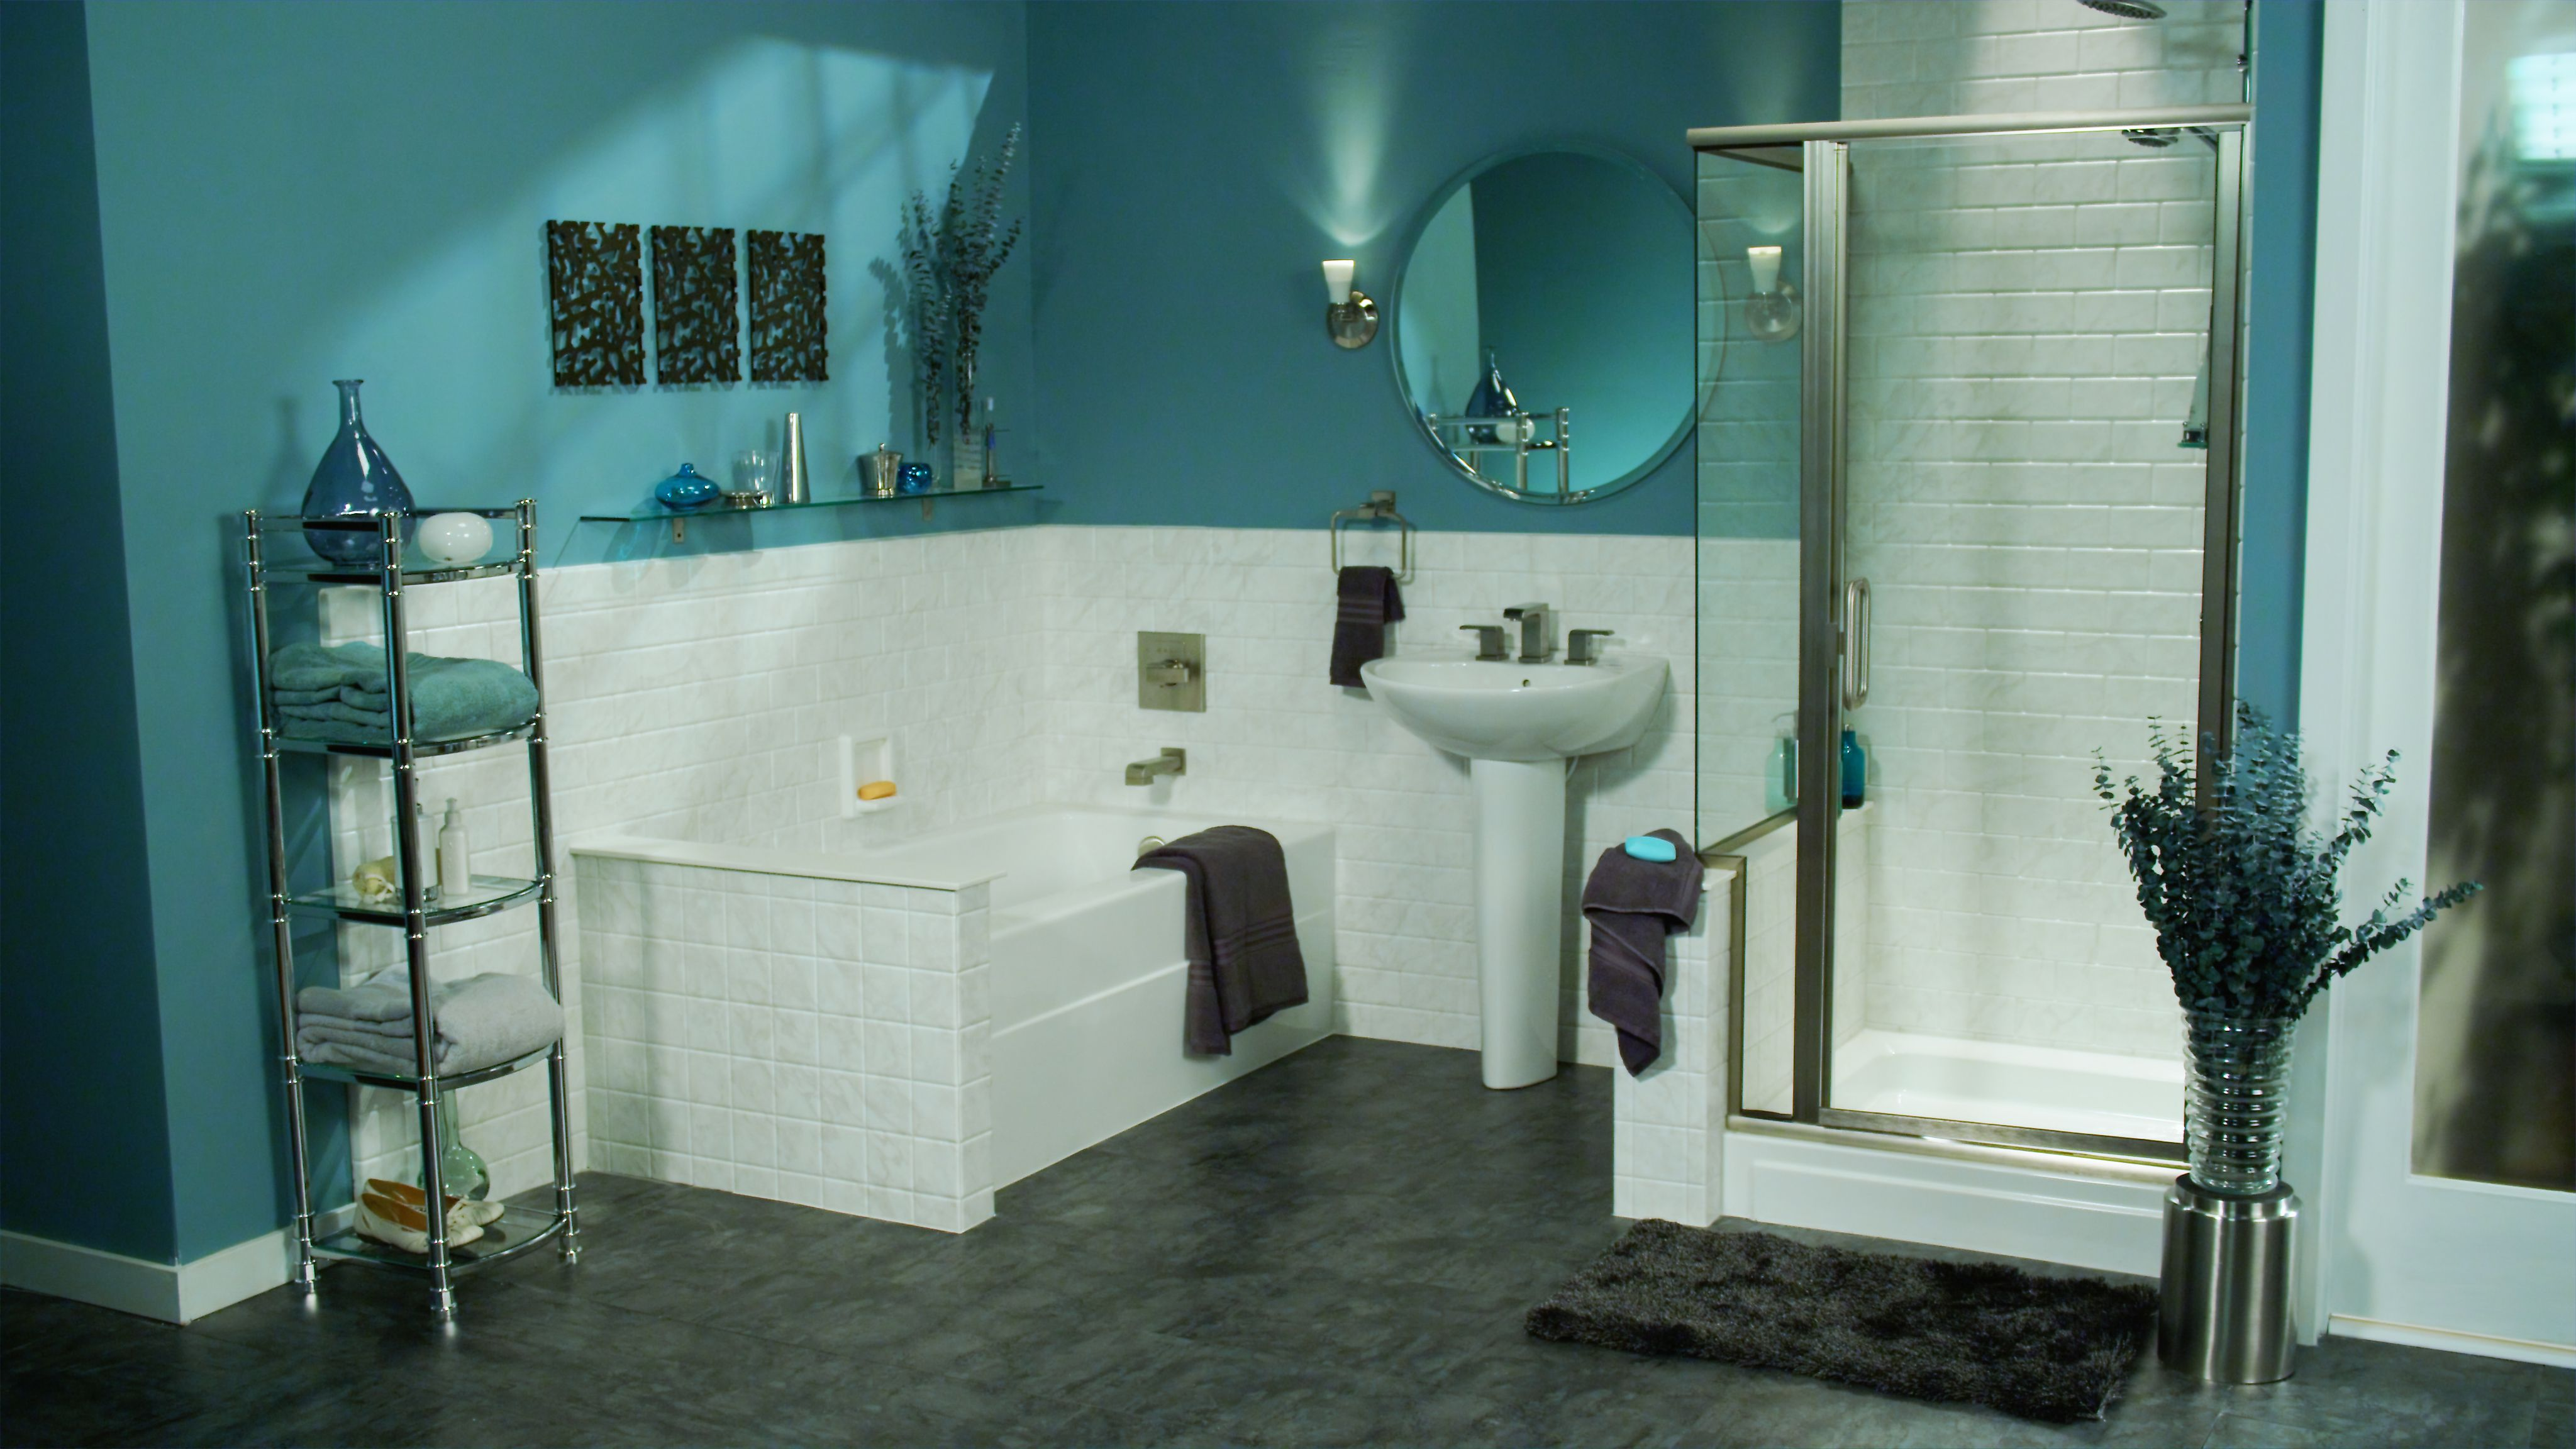 Modern Bathroom Wall Decor Bathroom Wall Decoration Wall Decals Wash Your Hands And Say Your